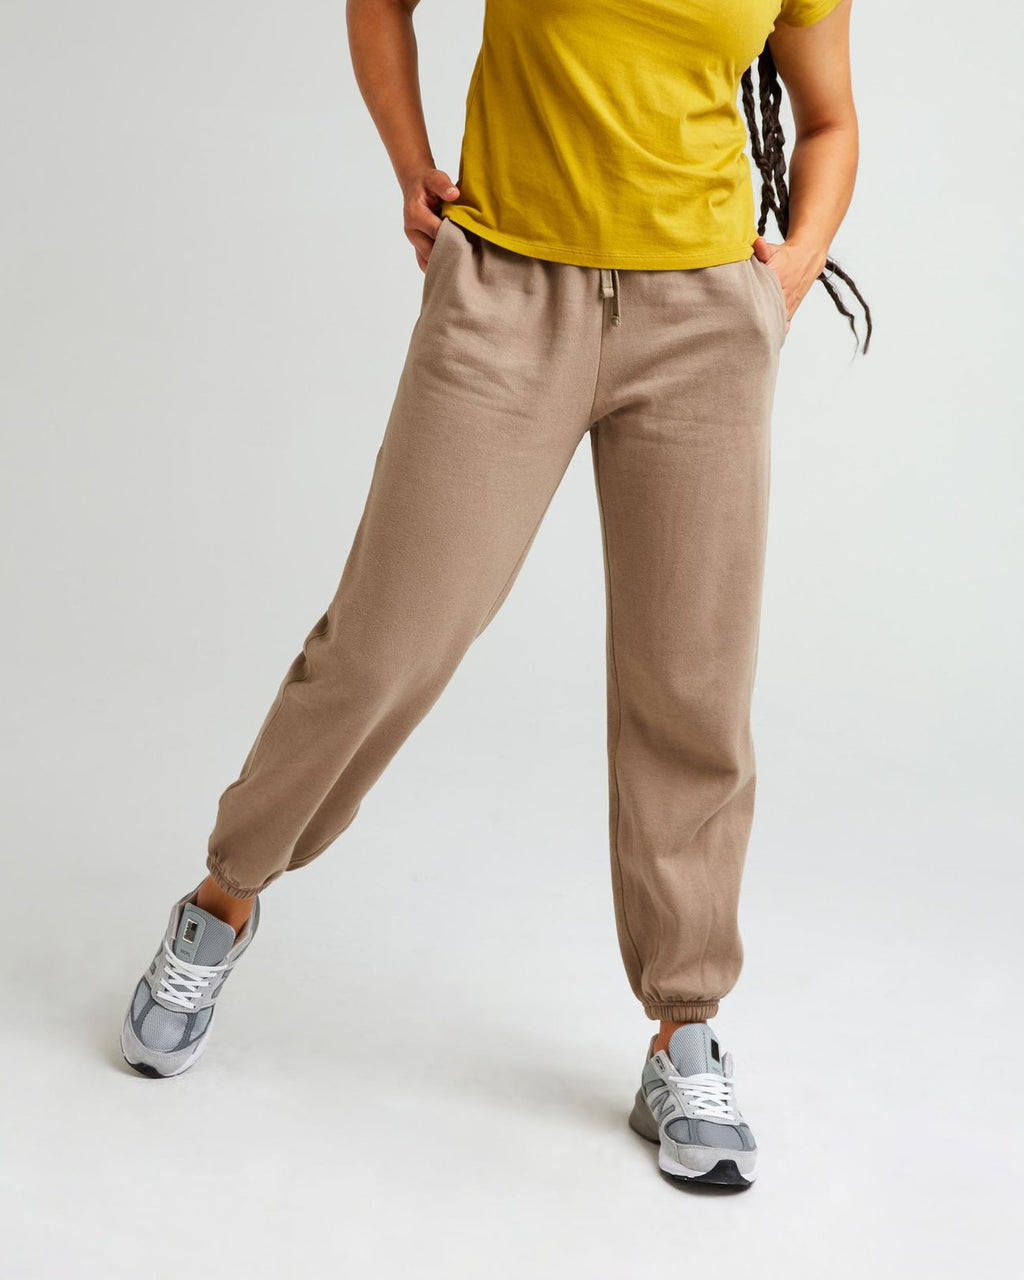 Women's Recycled Sweatpants- Warm Grey